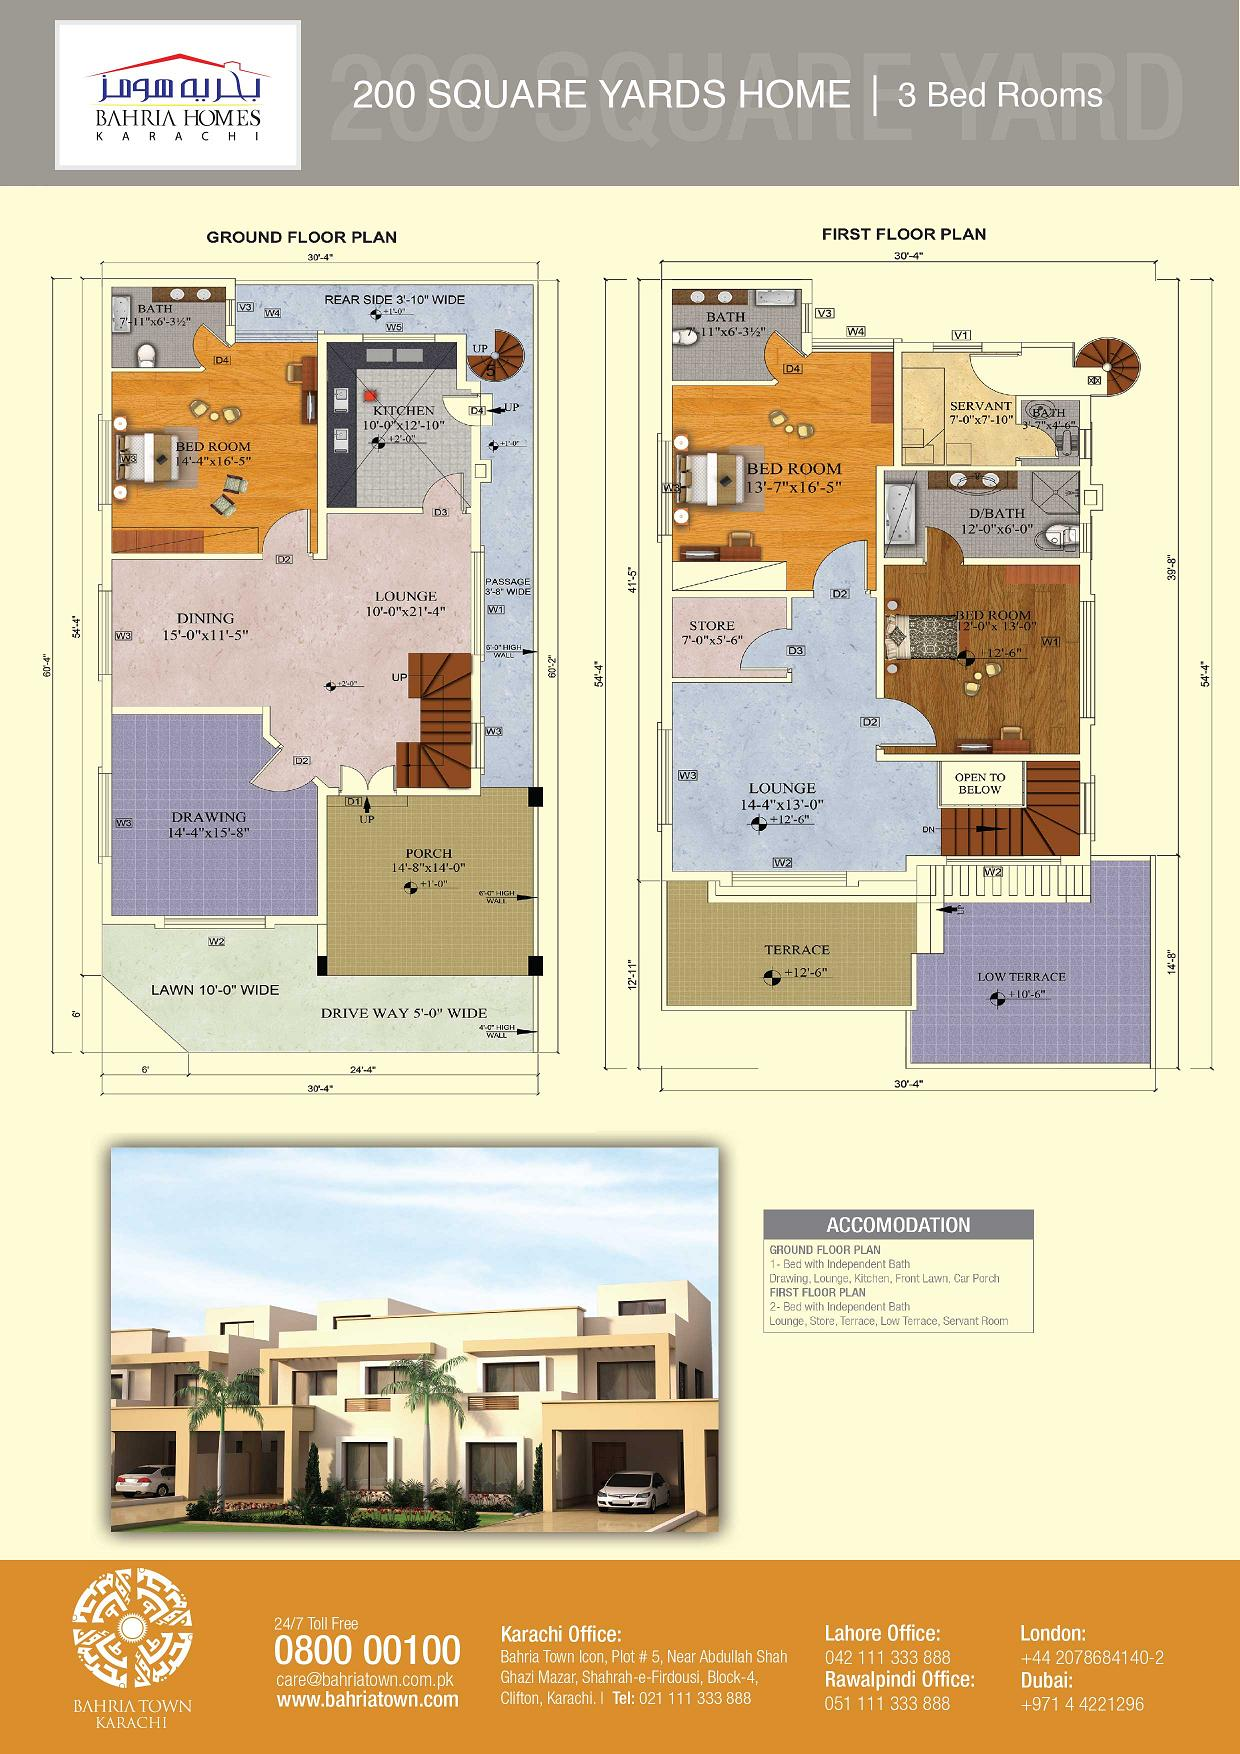 Floor plans of 125 and 200 sq yards bahria homes karachi for 120 square yards floor plan